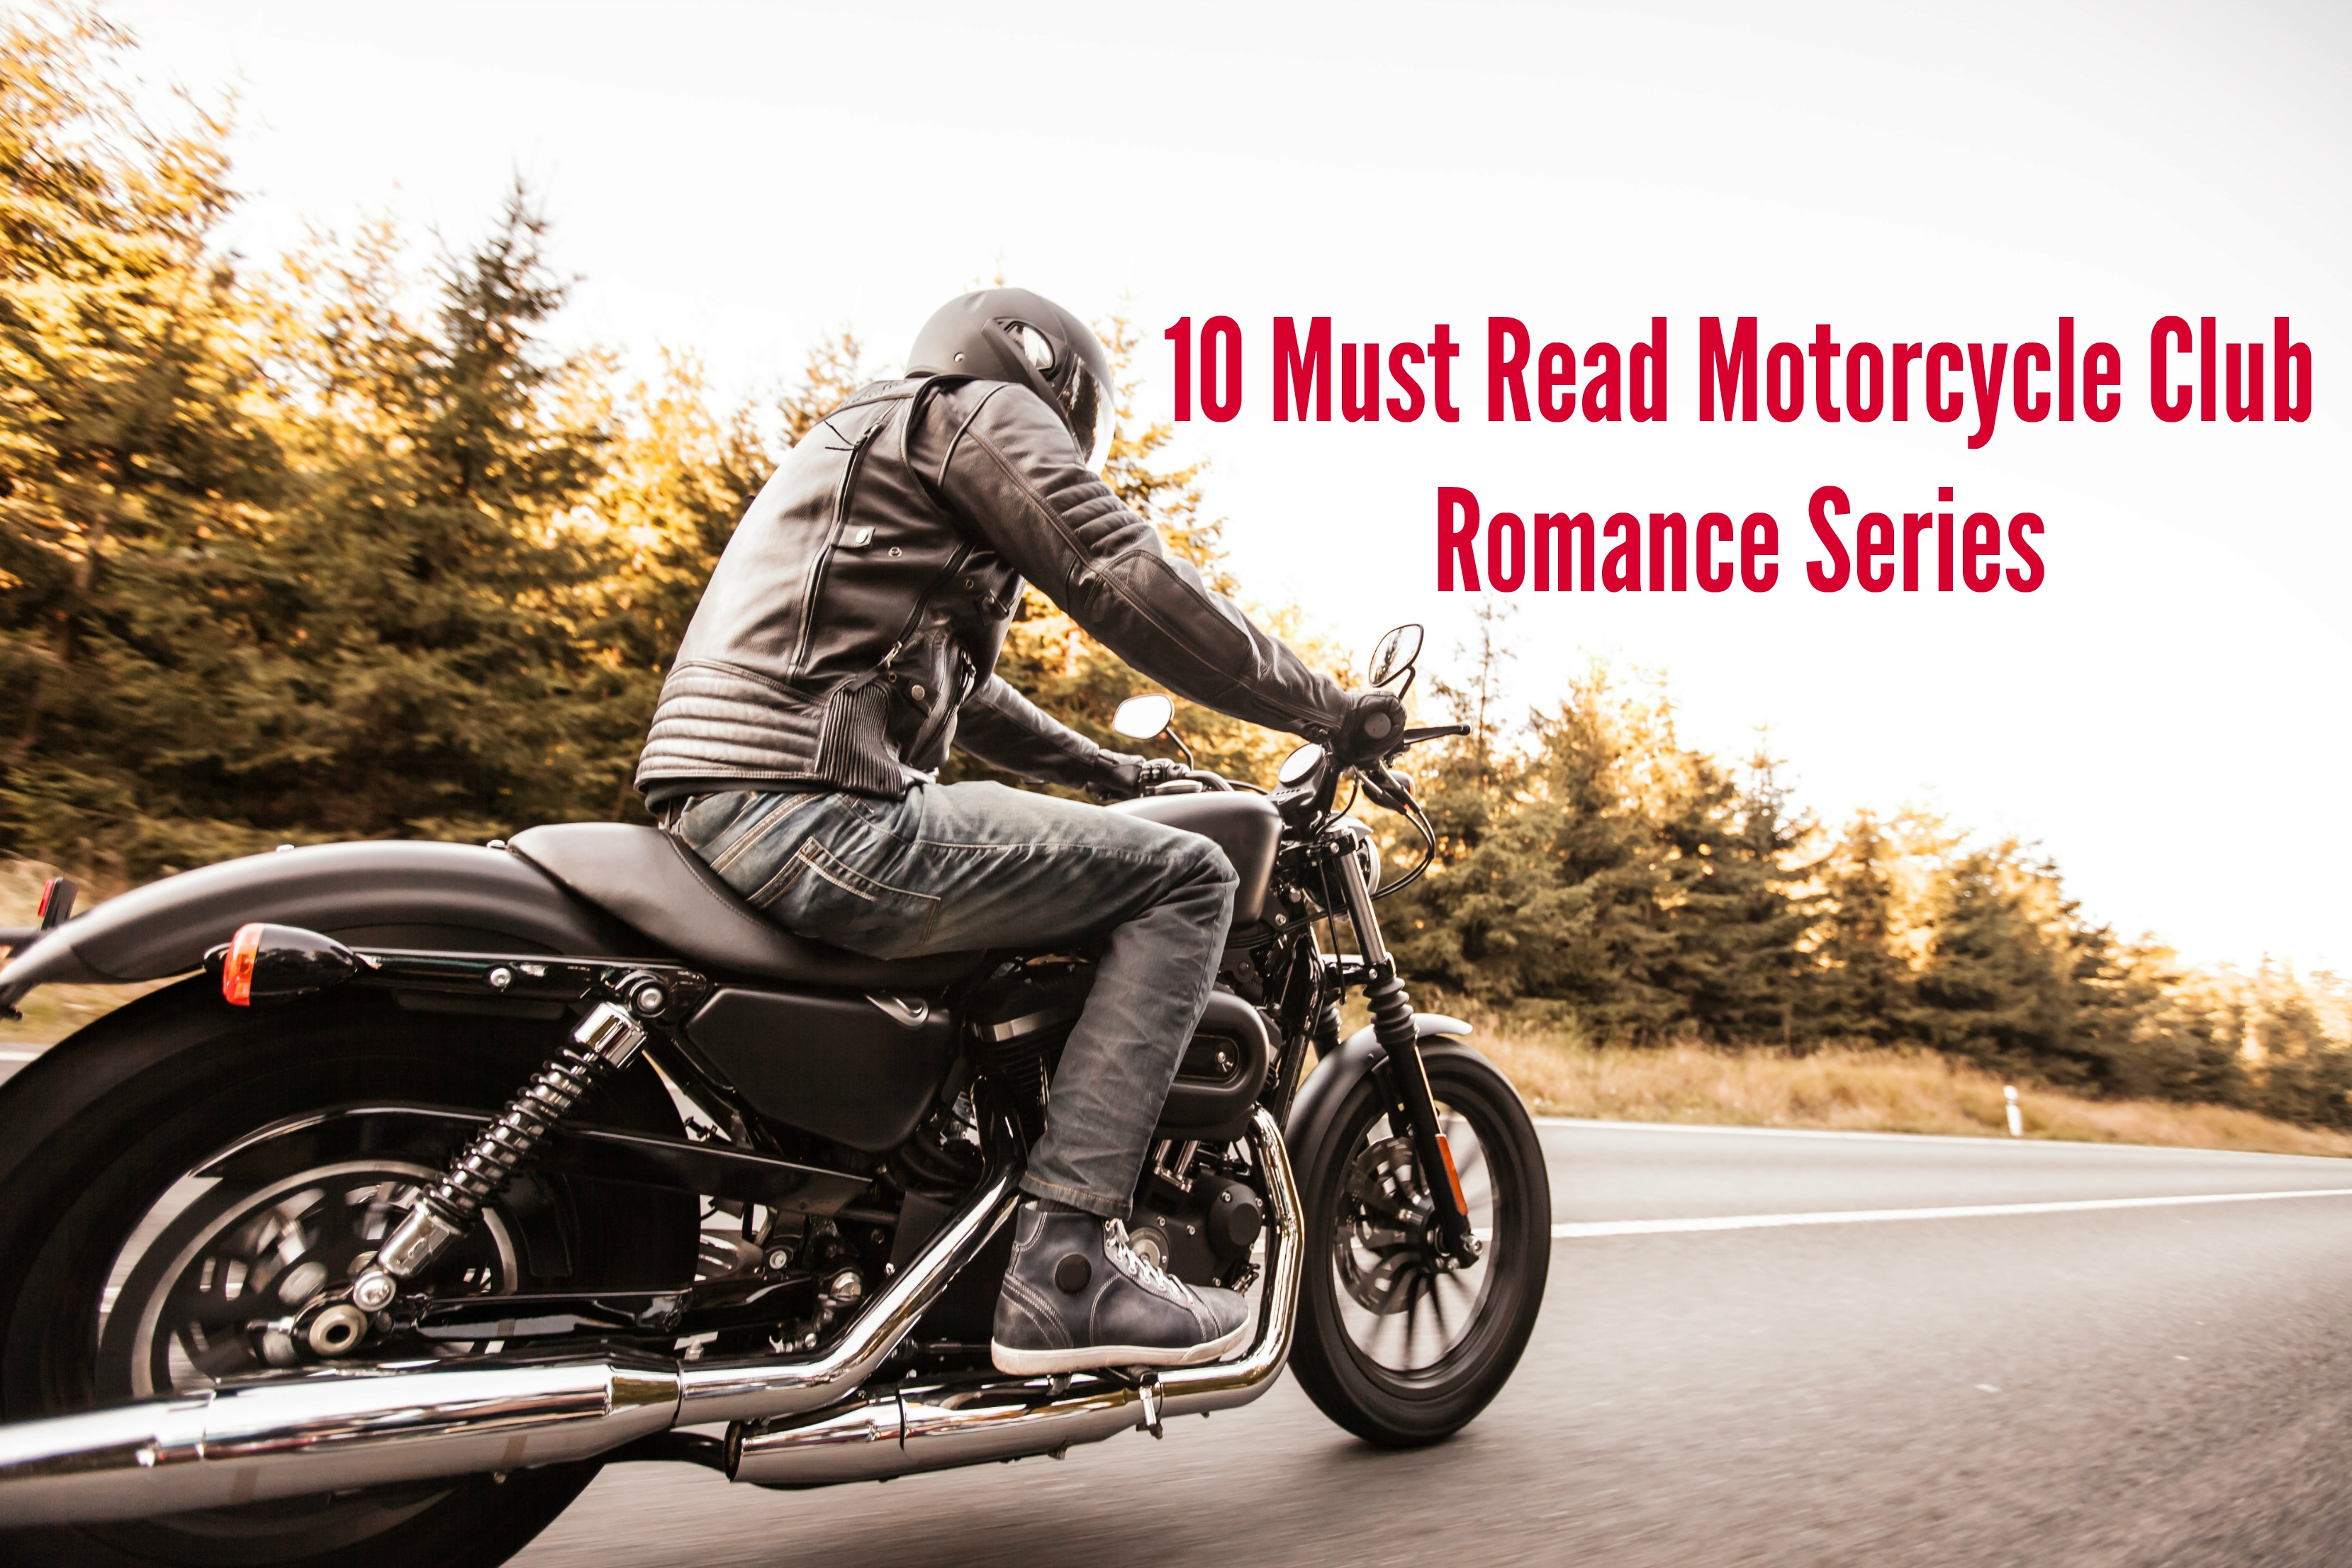 10 Must Read Motorcycle Club Romance Series